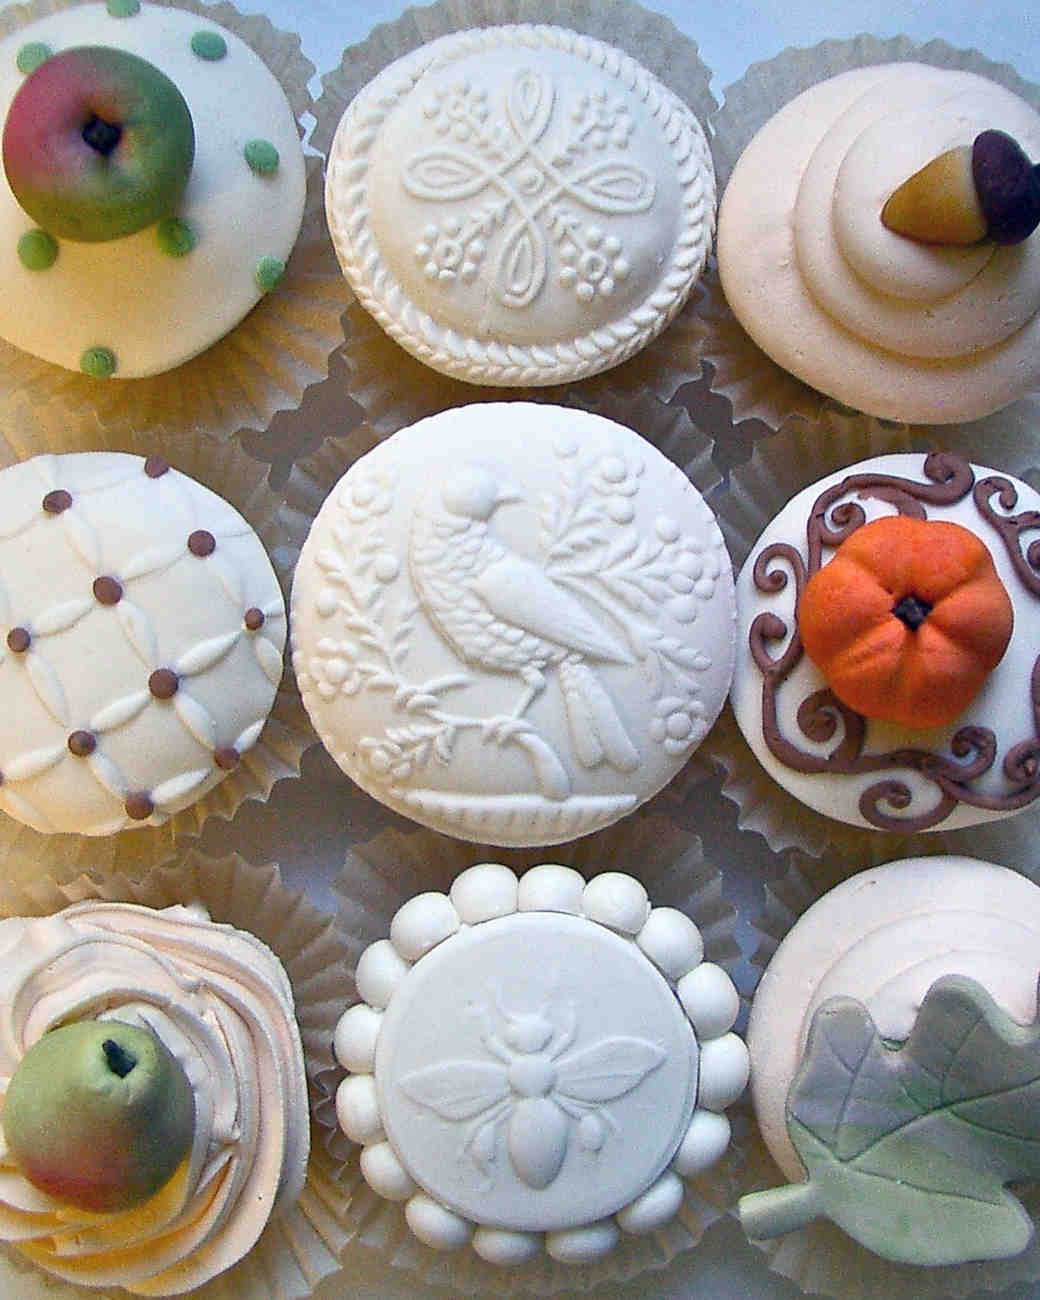 learn-the-lingo-frosting-marzipan-let-them-eat-cake-0814.jpg